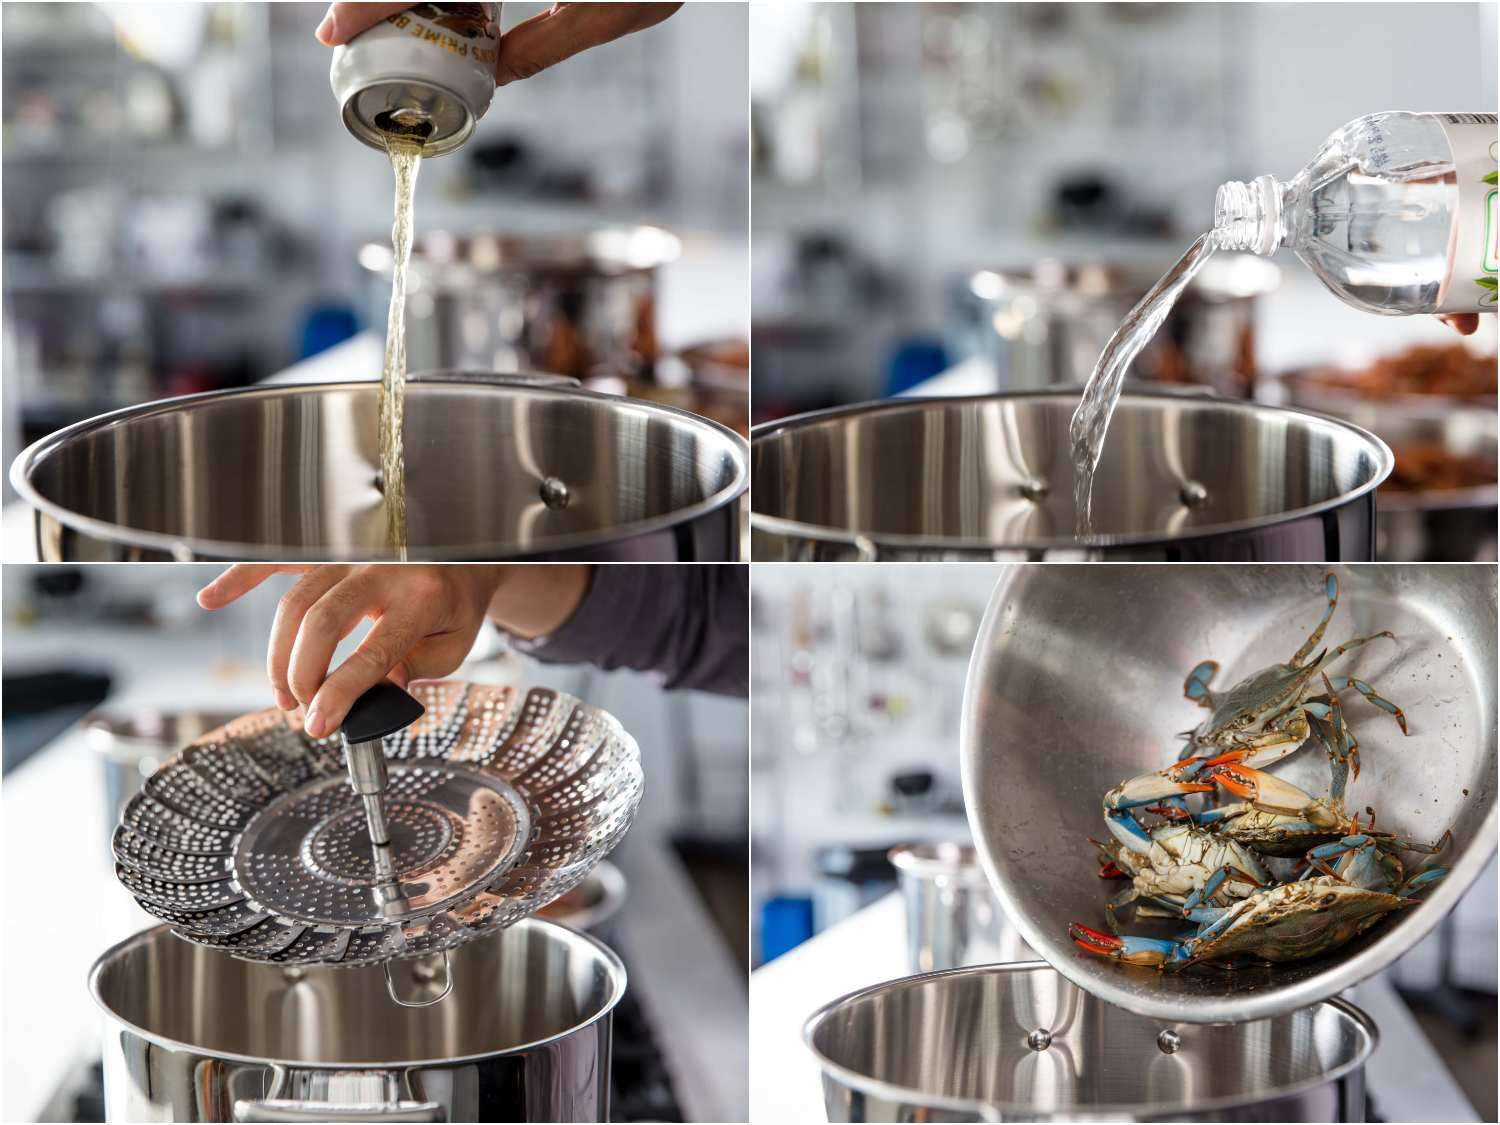 Preparing to steam crabs: pouring lager beer into the pot, pouring in vinegar, adding steamer basket, adding crabs